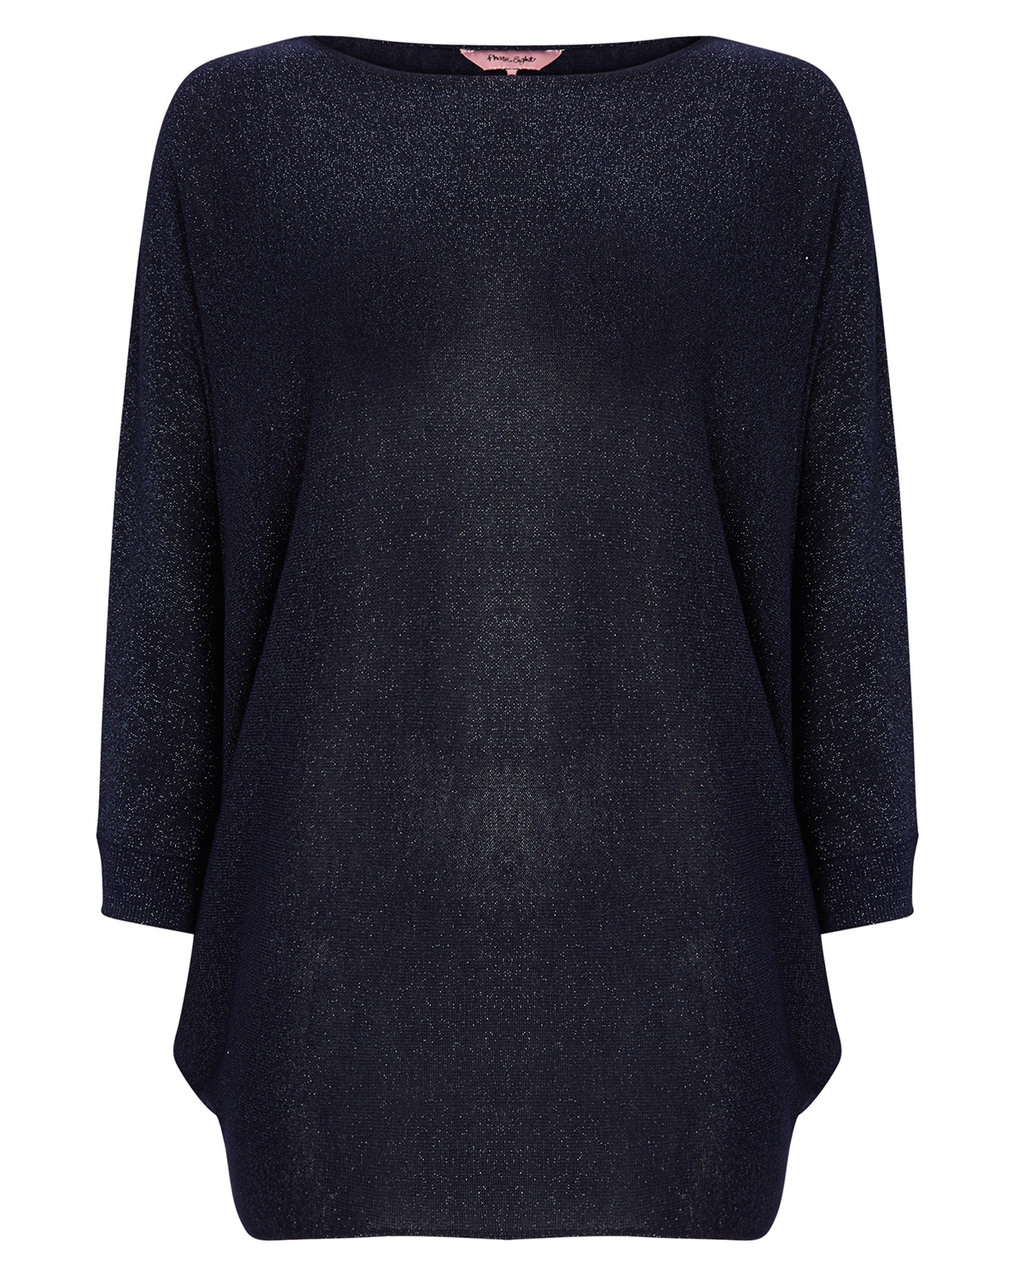 Shimmer Becca Batwing Knit - neckline: slash/boat neckline; pattern: plain; length: below the bottom; style: standard; predominant colour: navy; occasions: casual, creative work; fit: loose; sleeve length: long sleeve; sleeve style: standard; texture group: knits/crochet; pattern type: knitted - fine stitch; fibres: viscose/rayon - mix; season: a/w 2015; wardrobe: basic